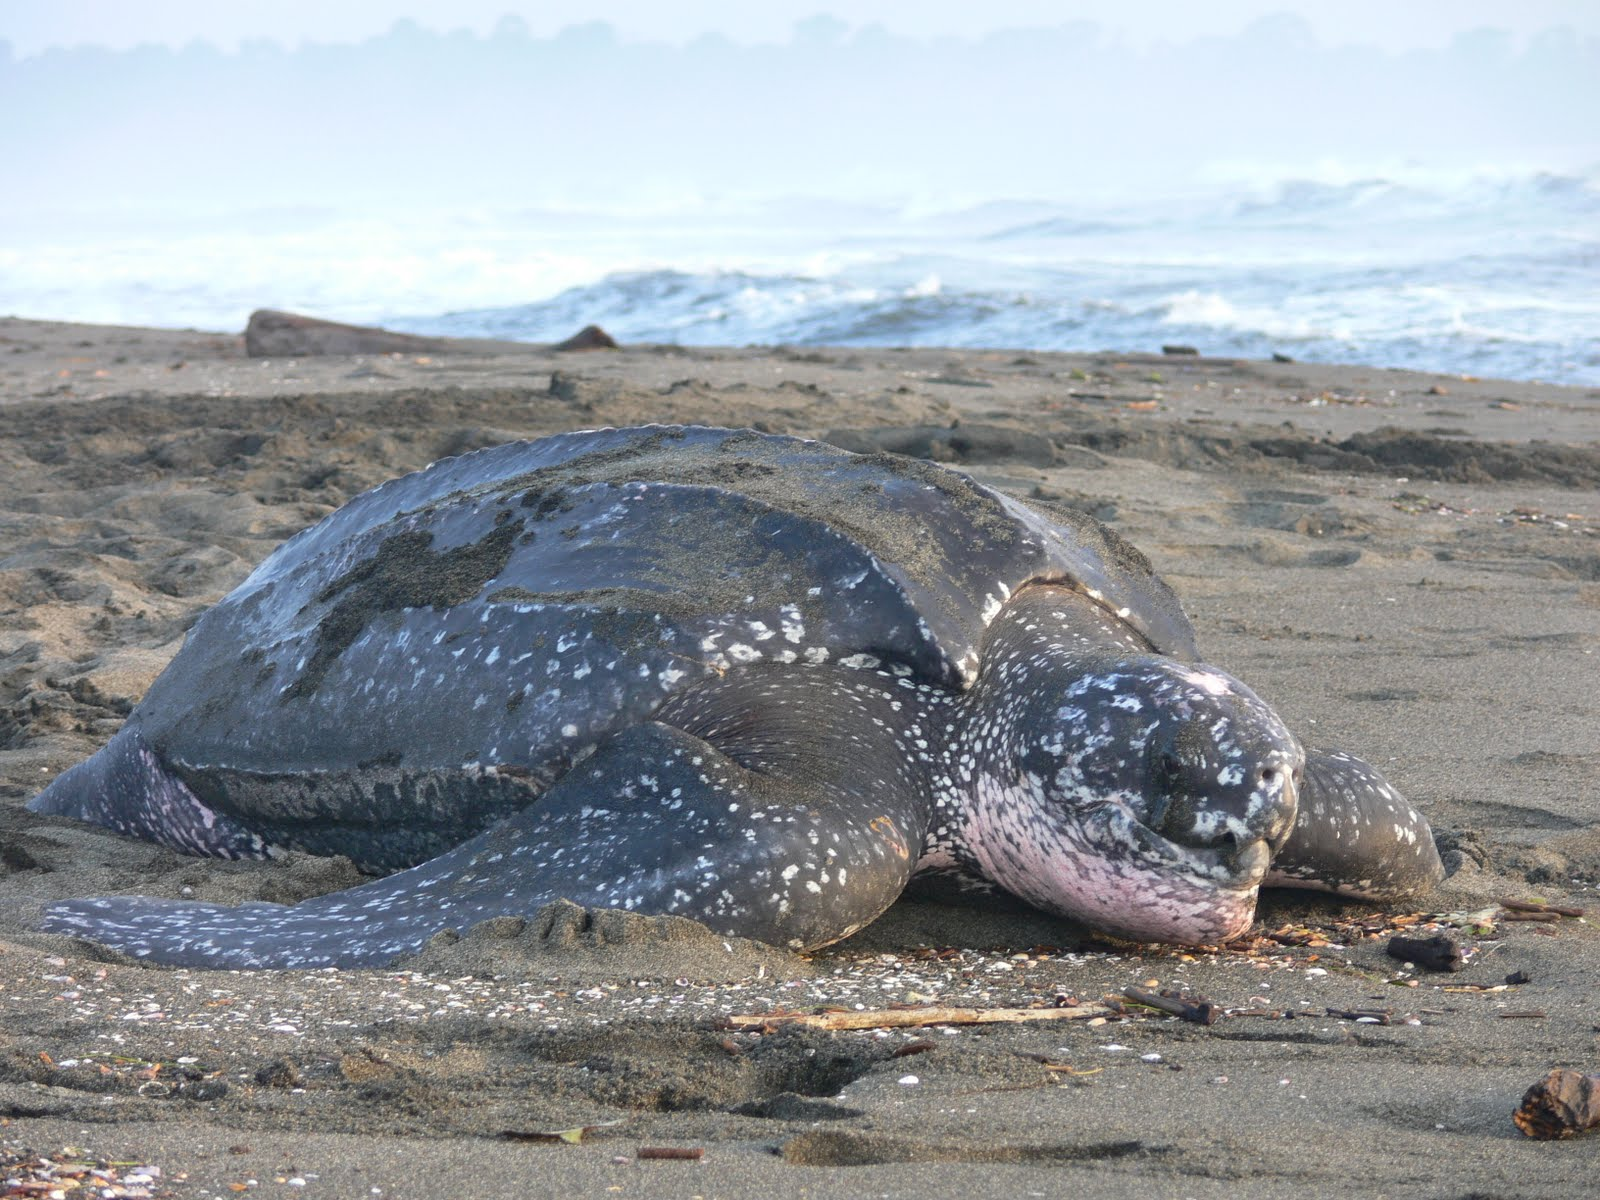 Leatherback sea turtle pictures in the water - photo#40